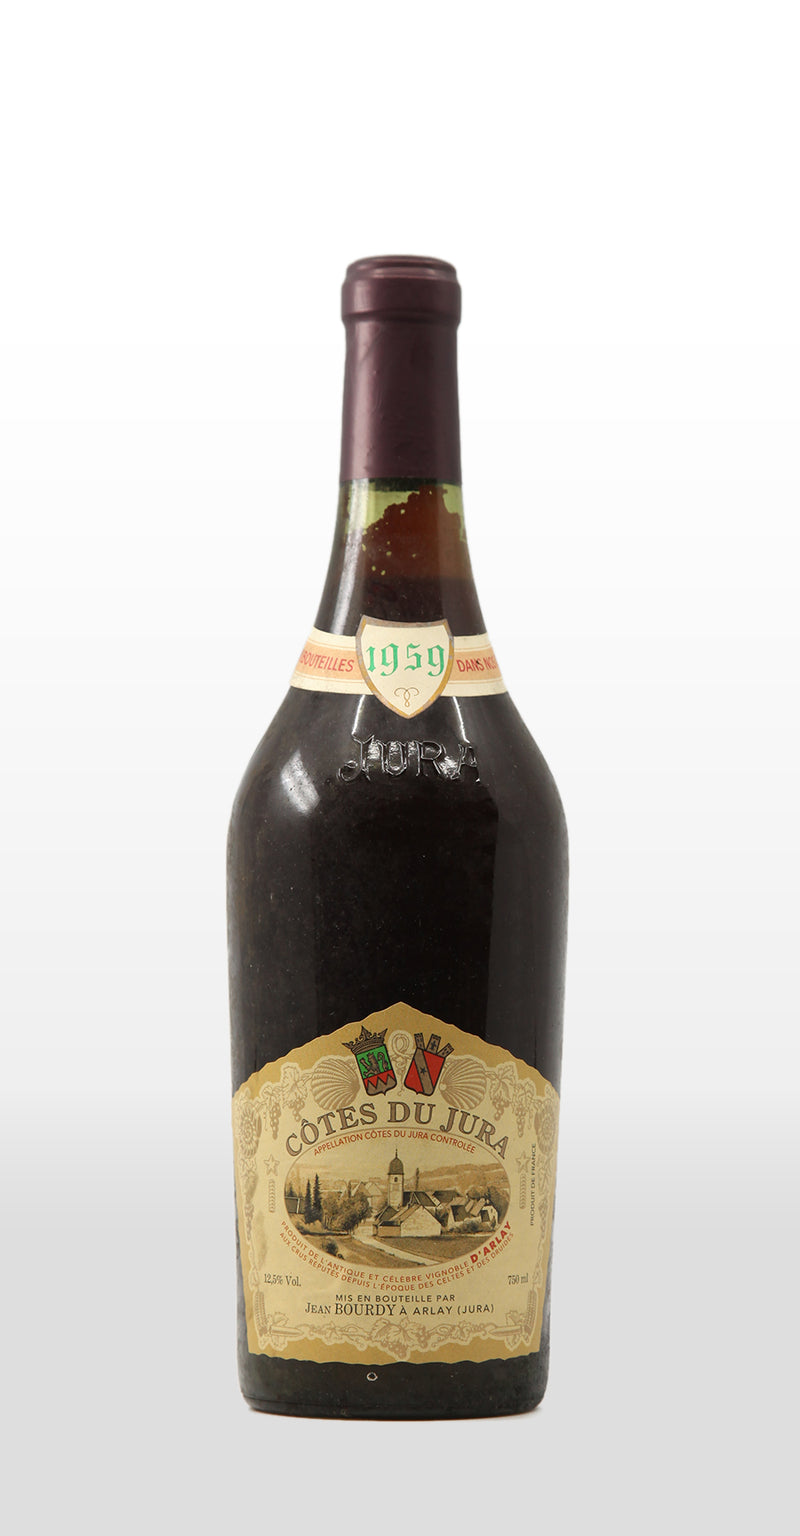 JEAN BOURDY COTES DU JURA ROUGE 1959 750ML